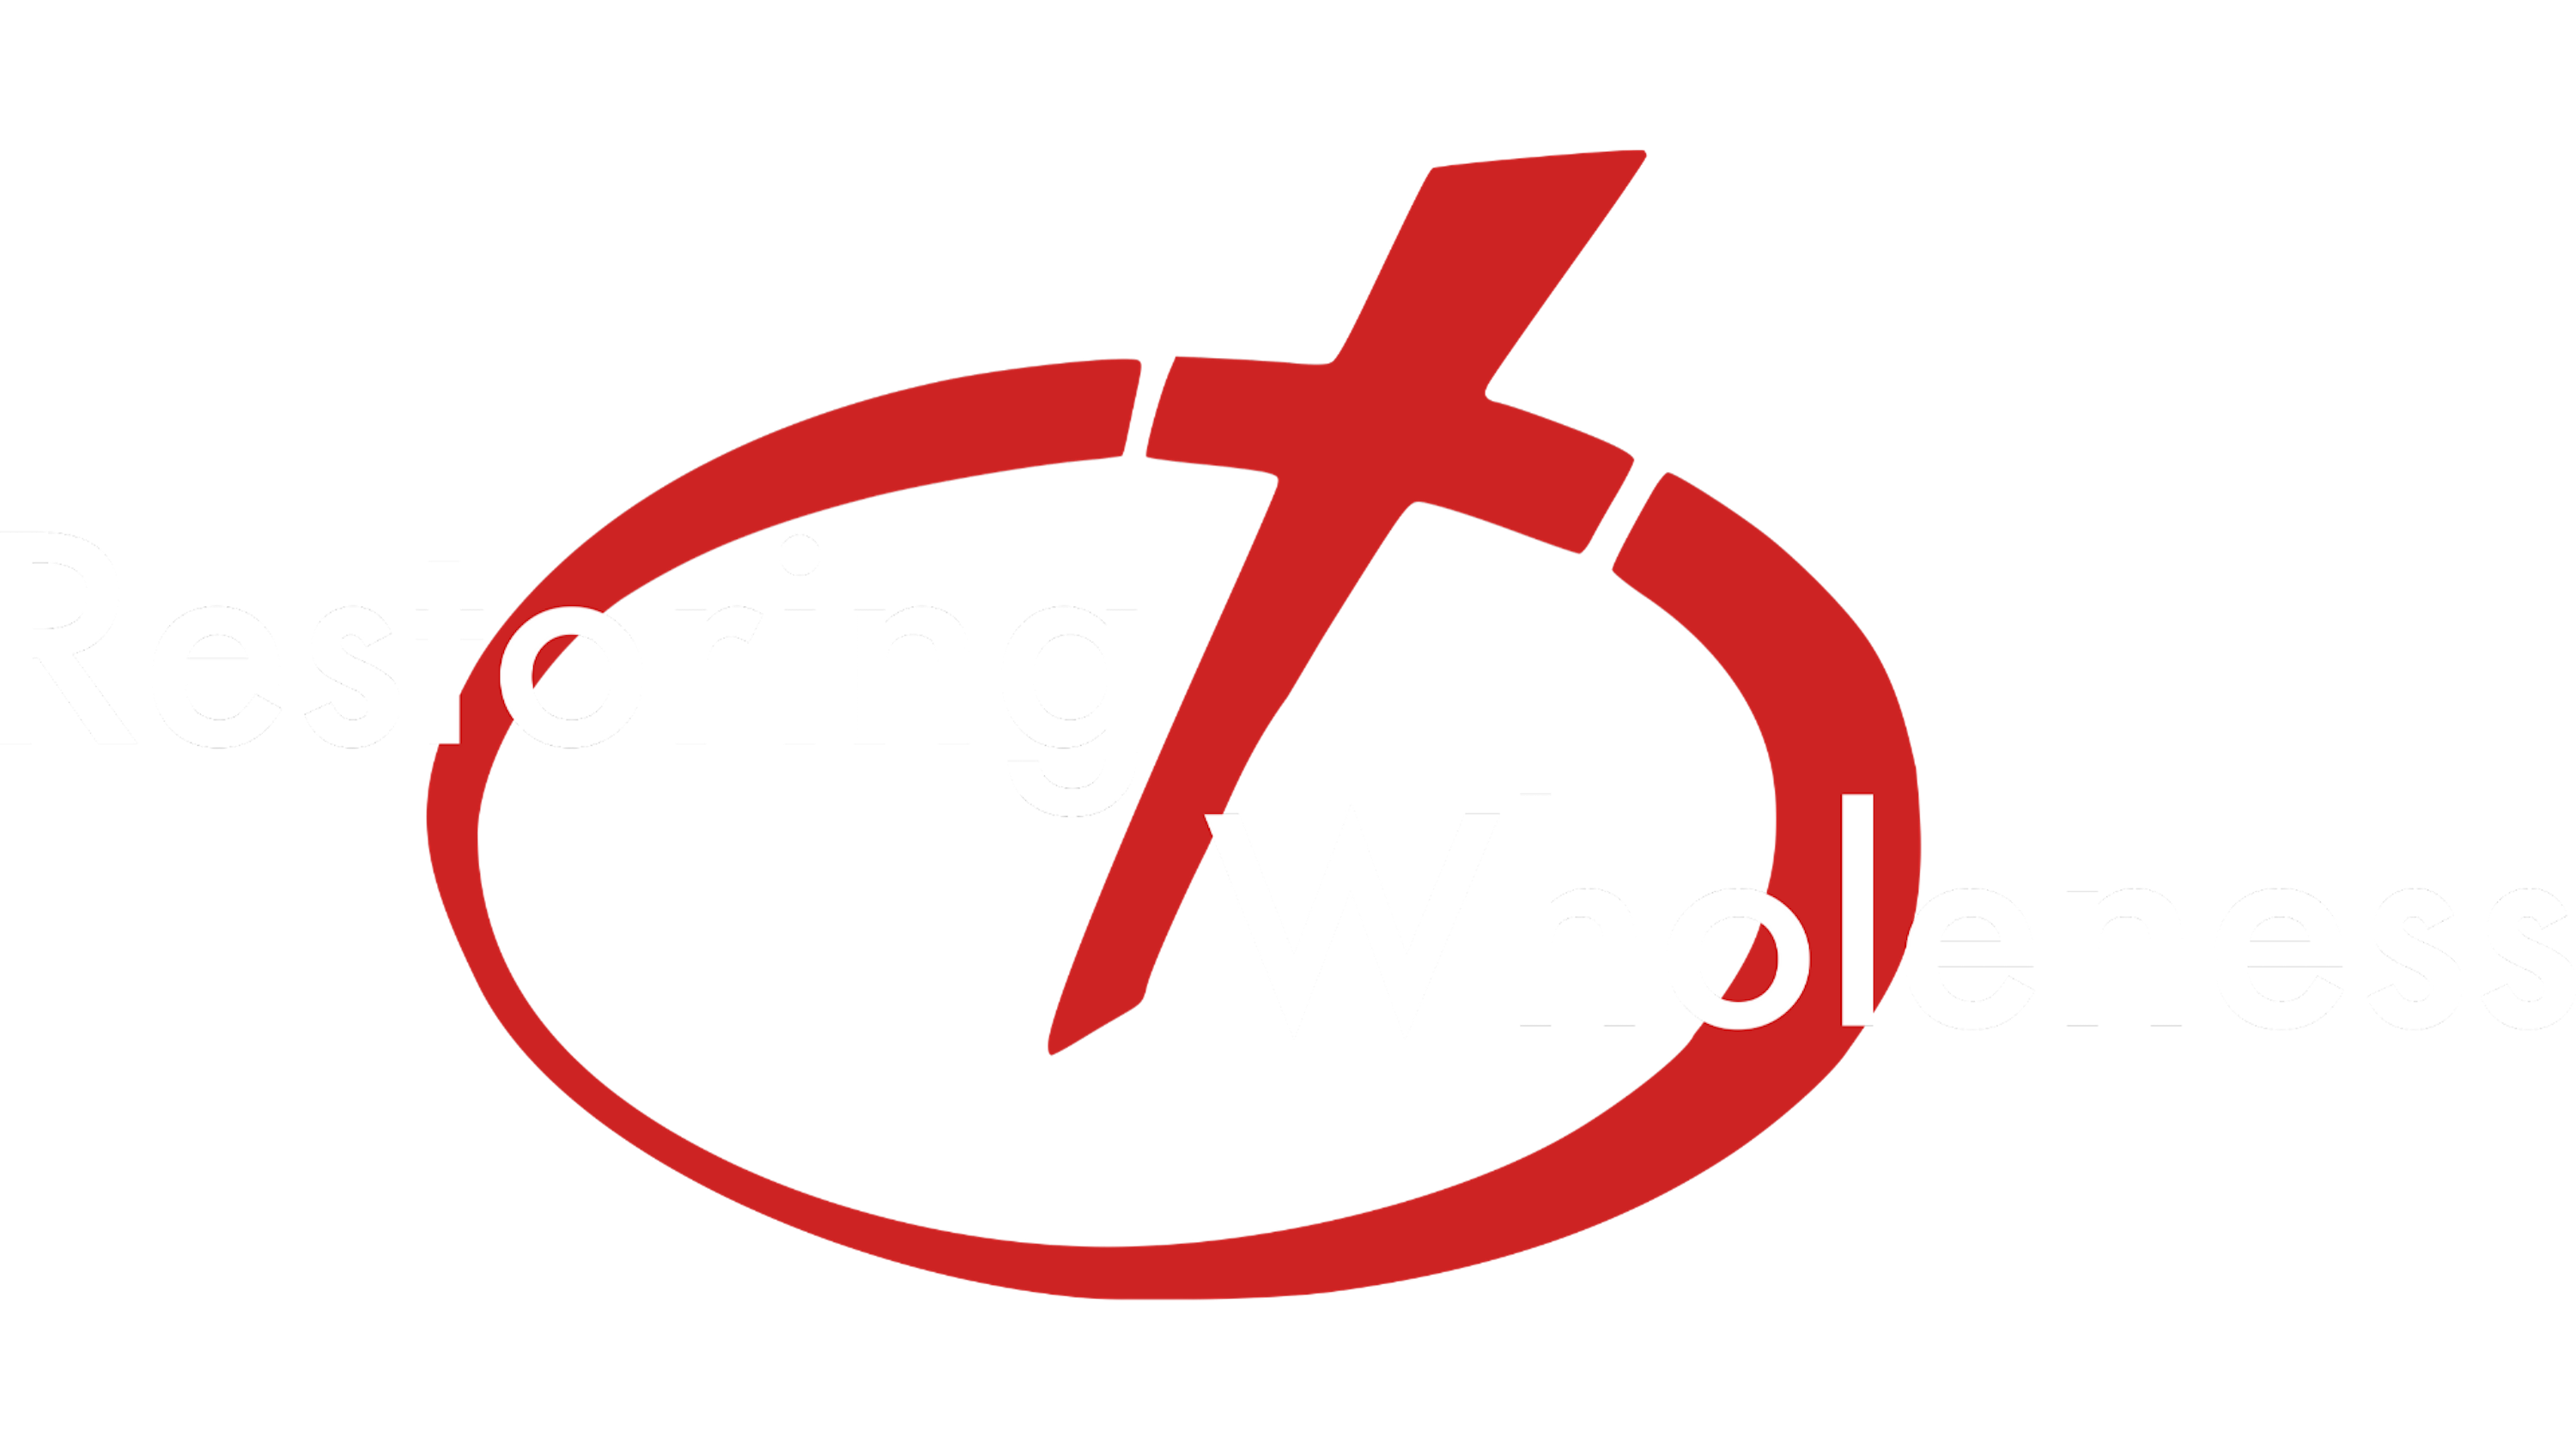 Restoring Wholeness Ministries